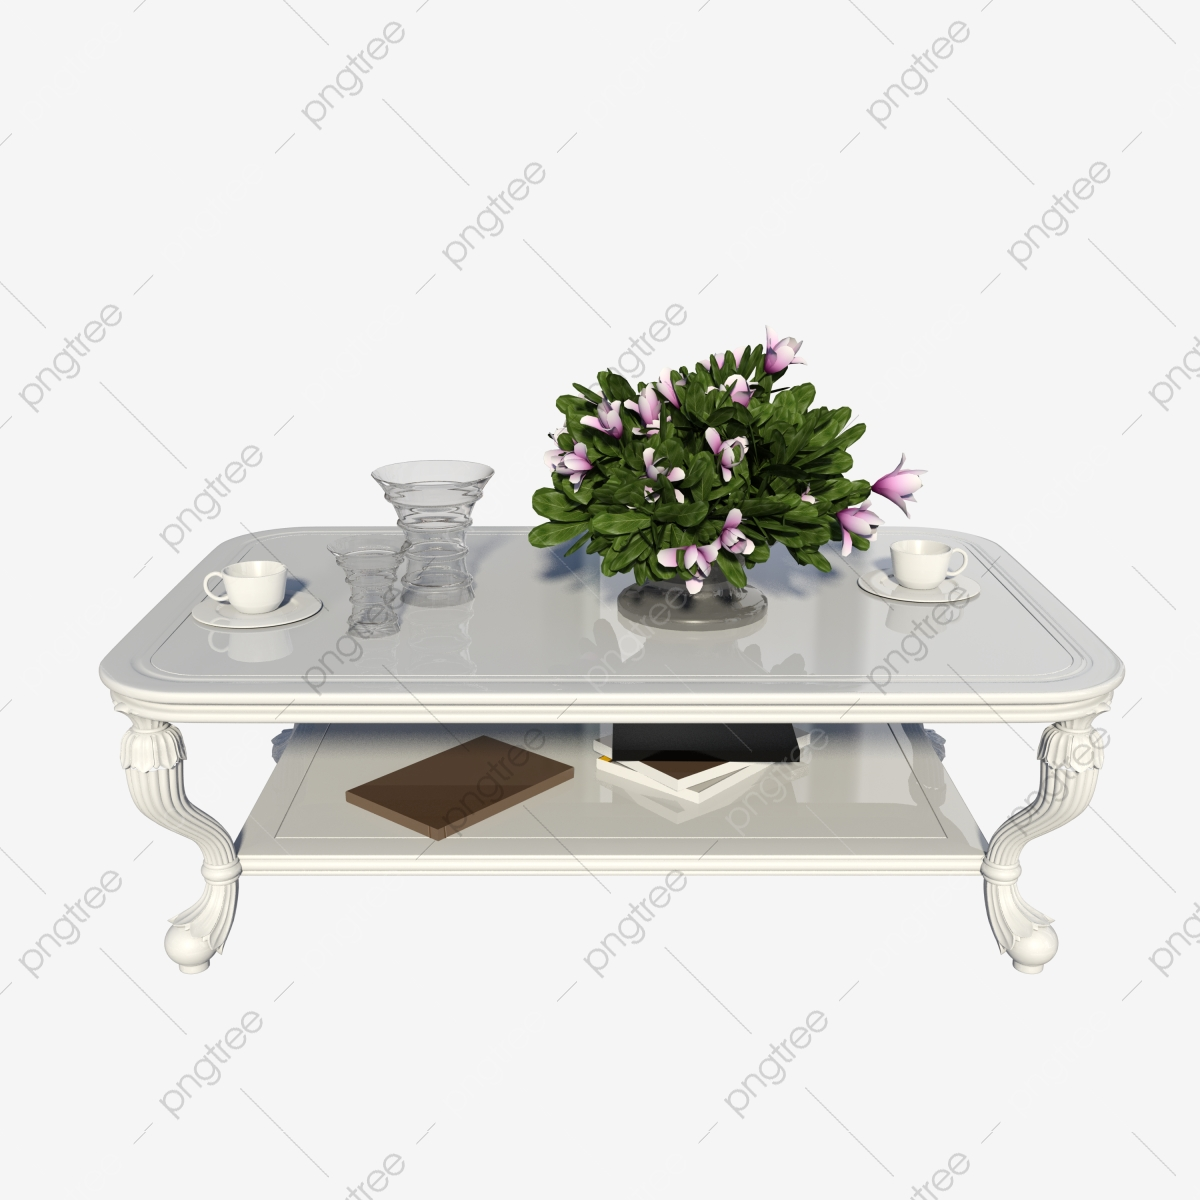 Taille Table Basse Standard table basse salon meubles blanc, meubles, table basse, salon